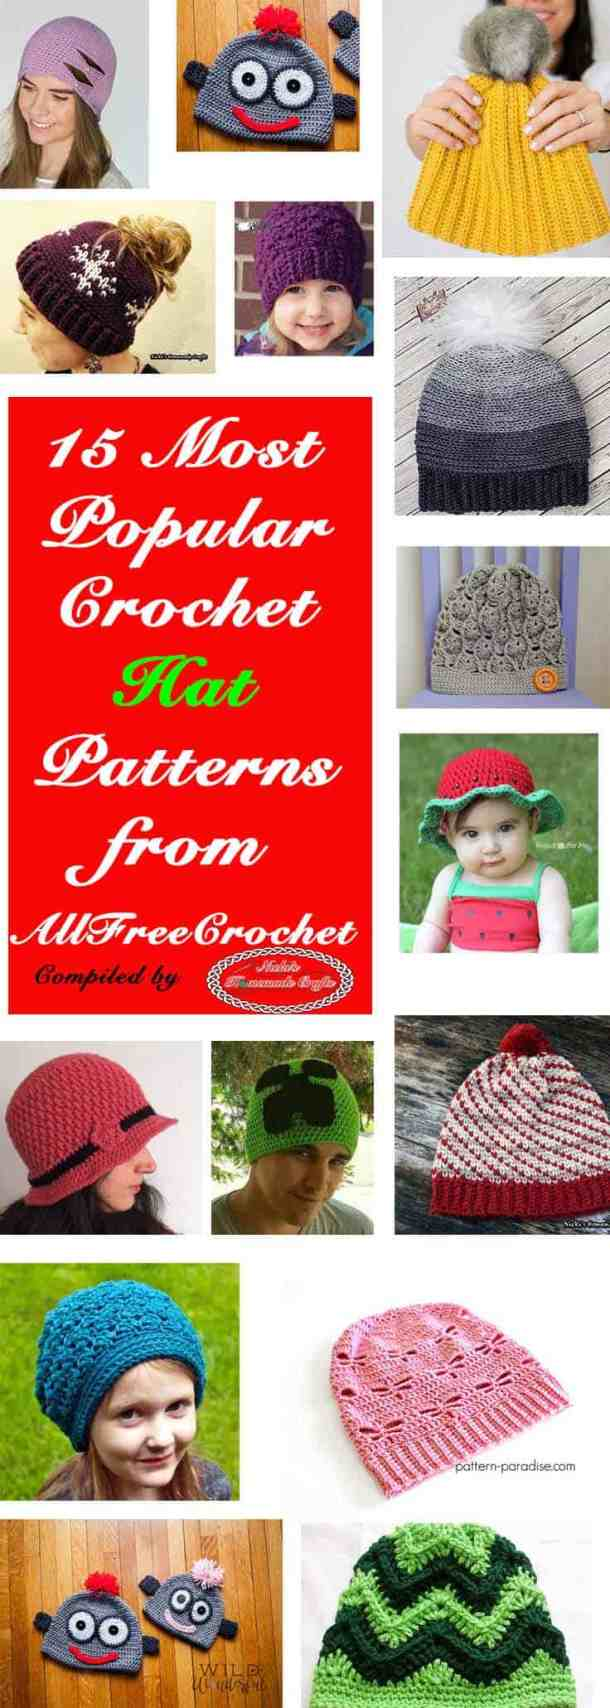 15 Most Popular Crochet Hat Patterns from AllFreeCrochet by Nicki's Homemade Crafts #crochet #patterns #free #allfreecrochet #hat #beanie #popular #best #collection